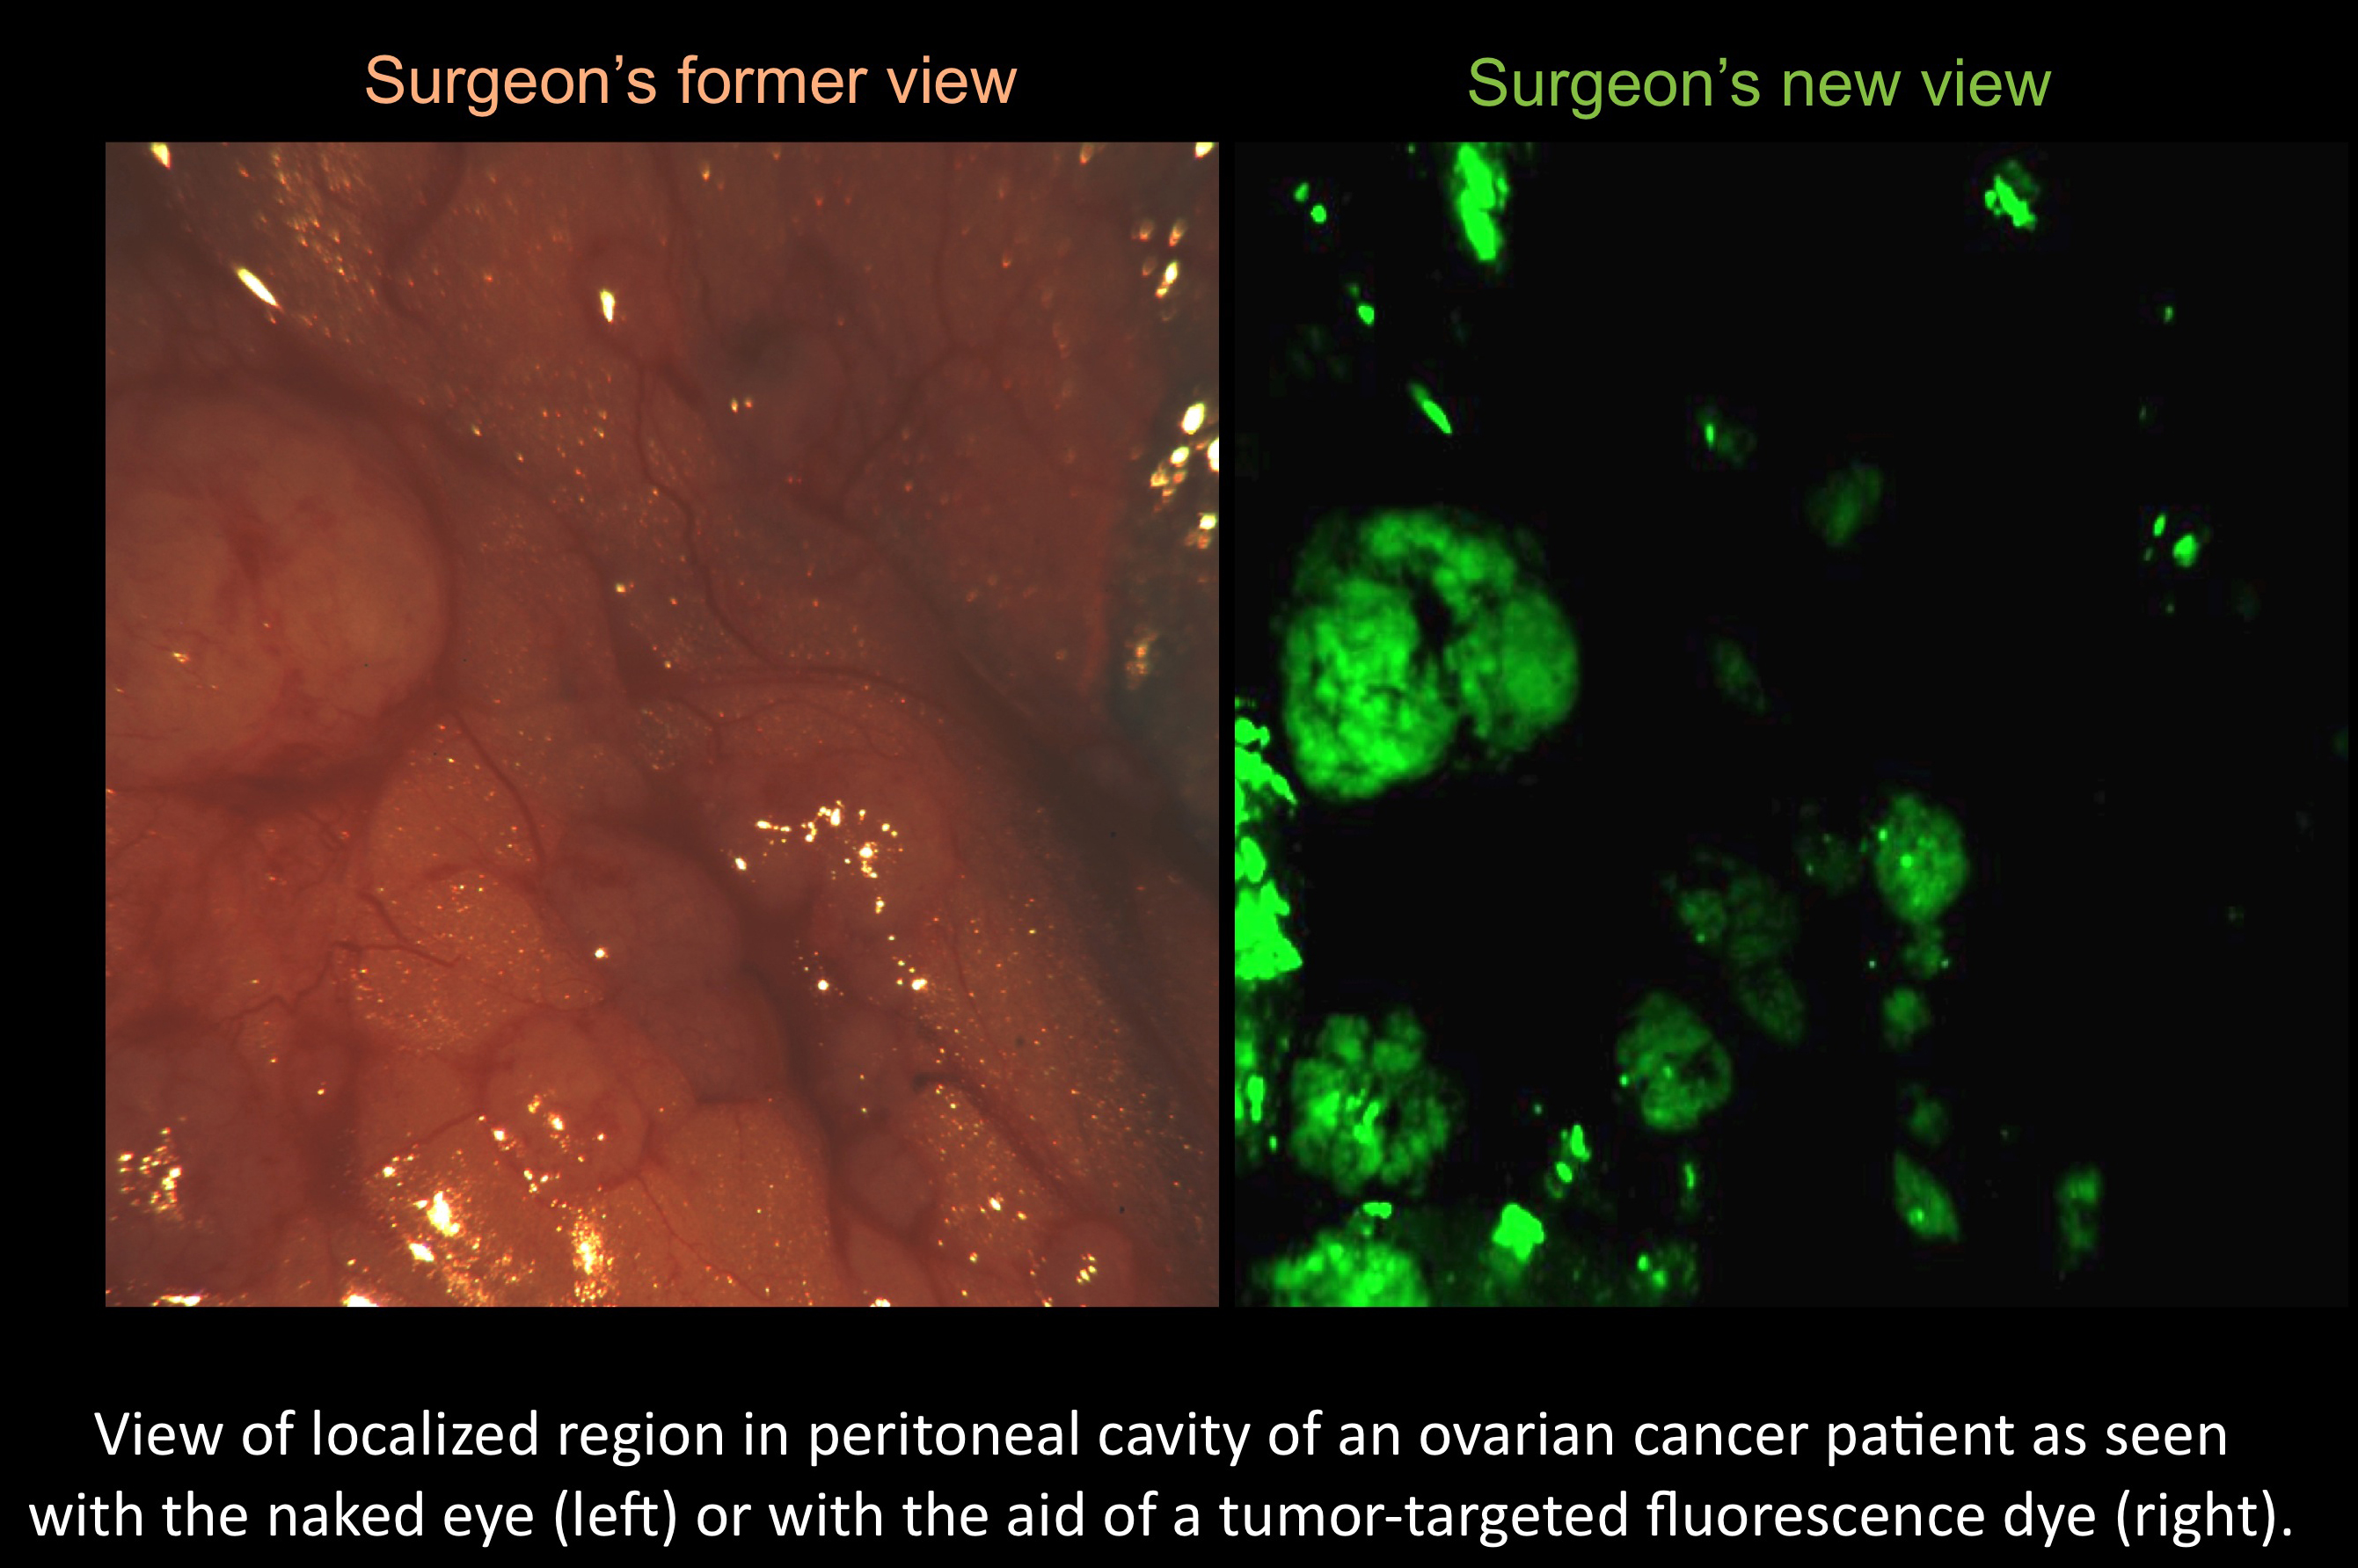 Fluorescent Dye Lights Up Cancer Cells Making Surgery More